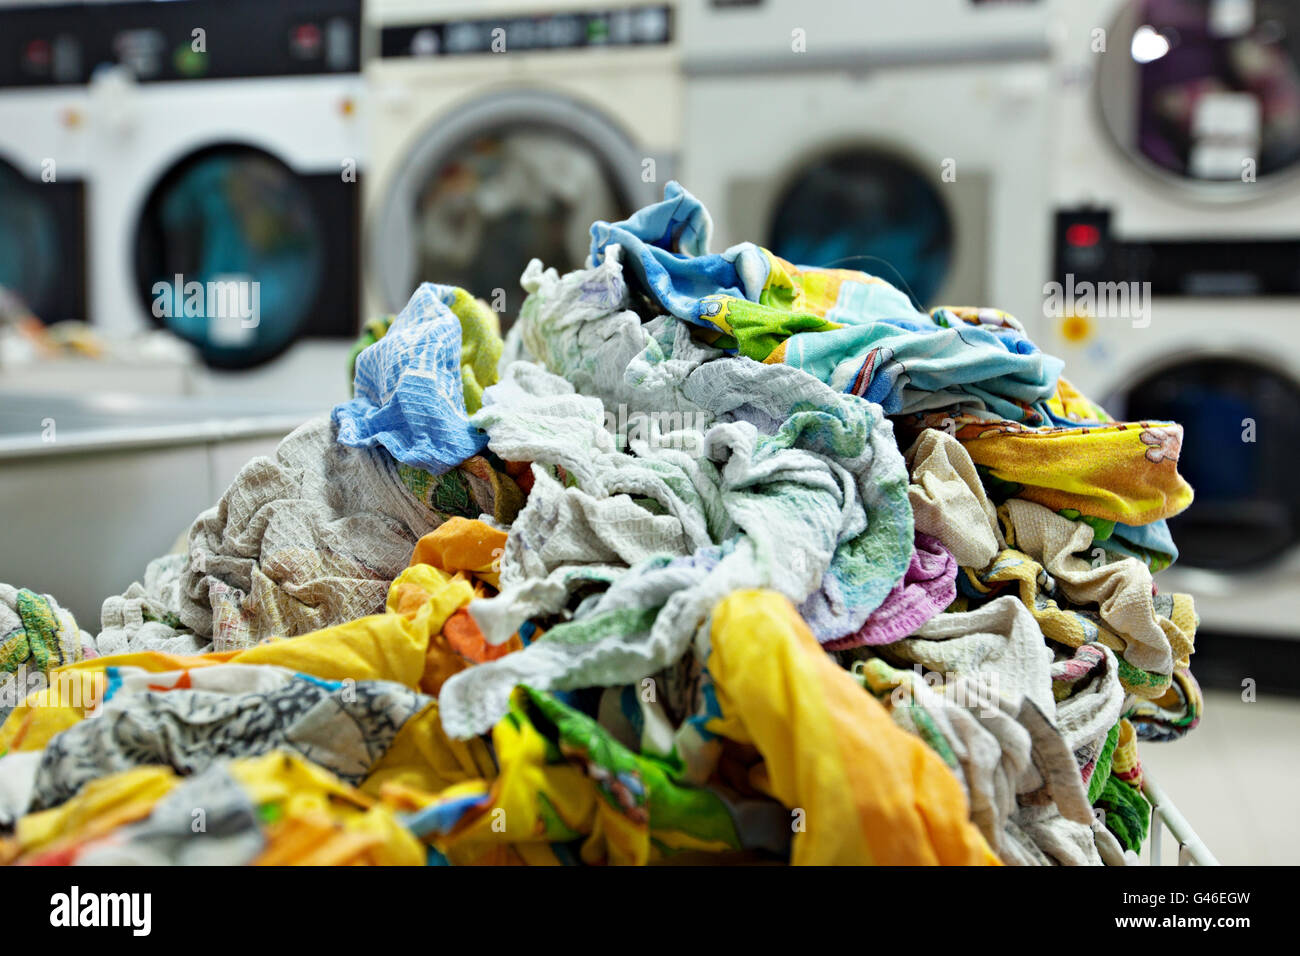 Pile of dirty laundry in laundrette - Stock Image